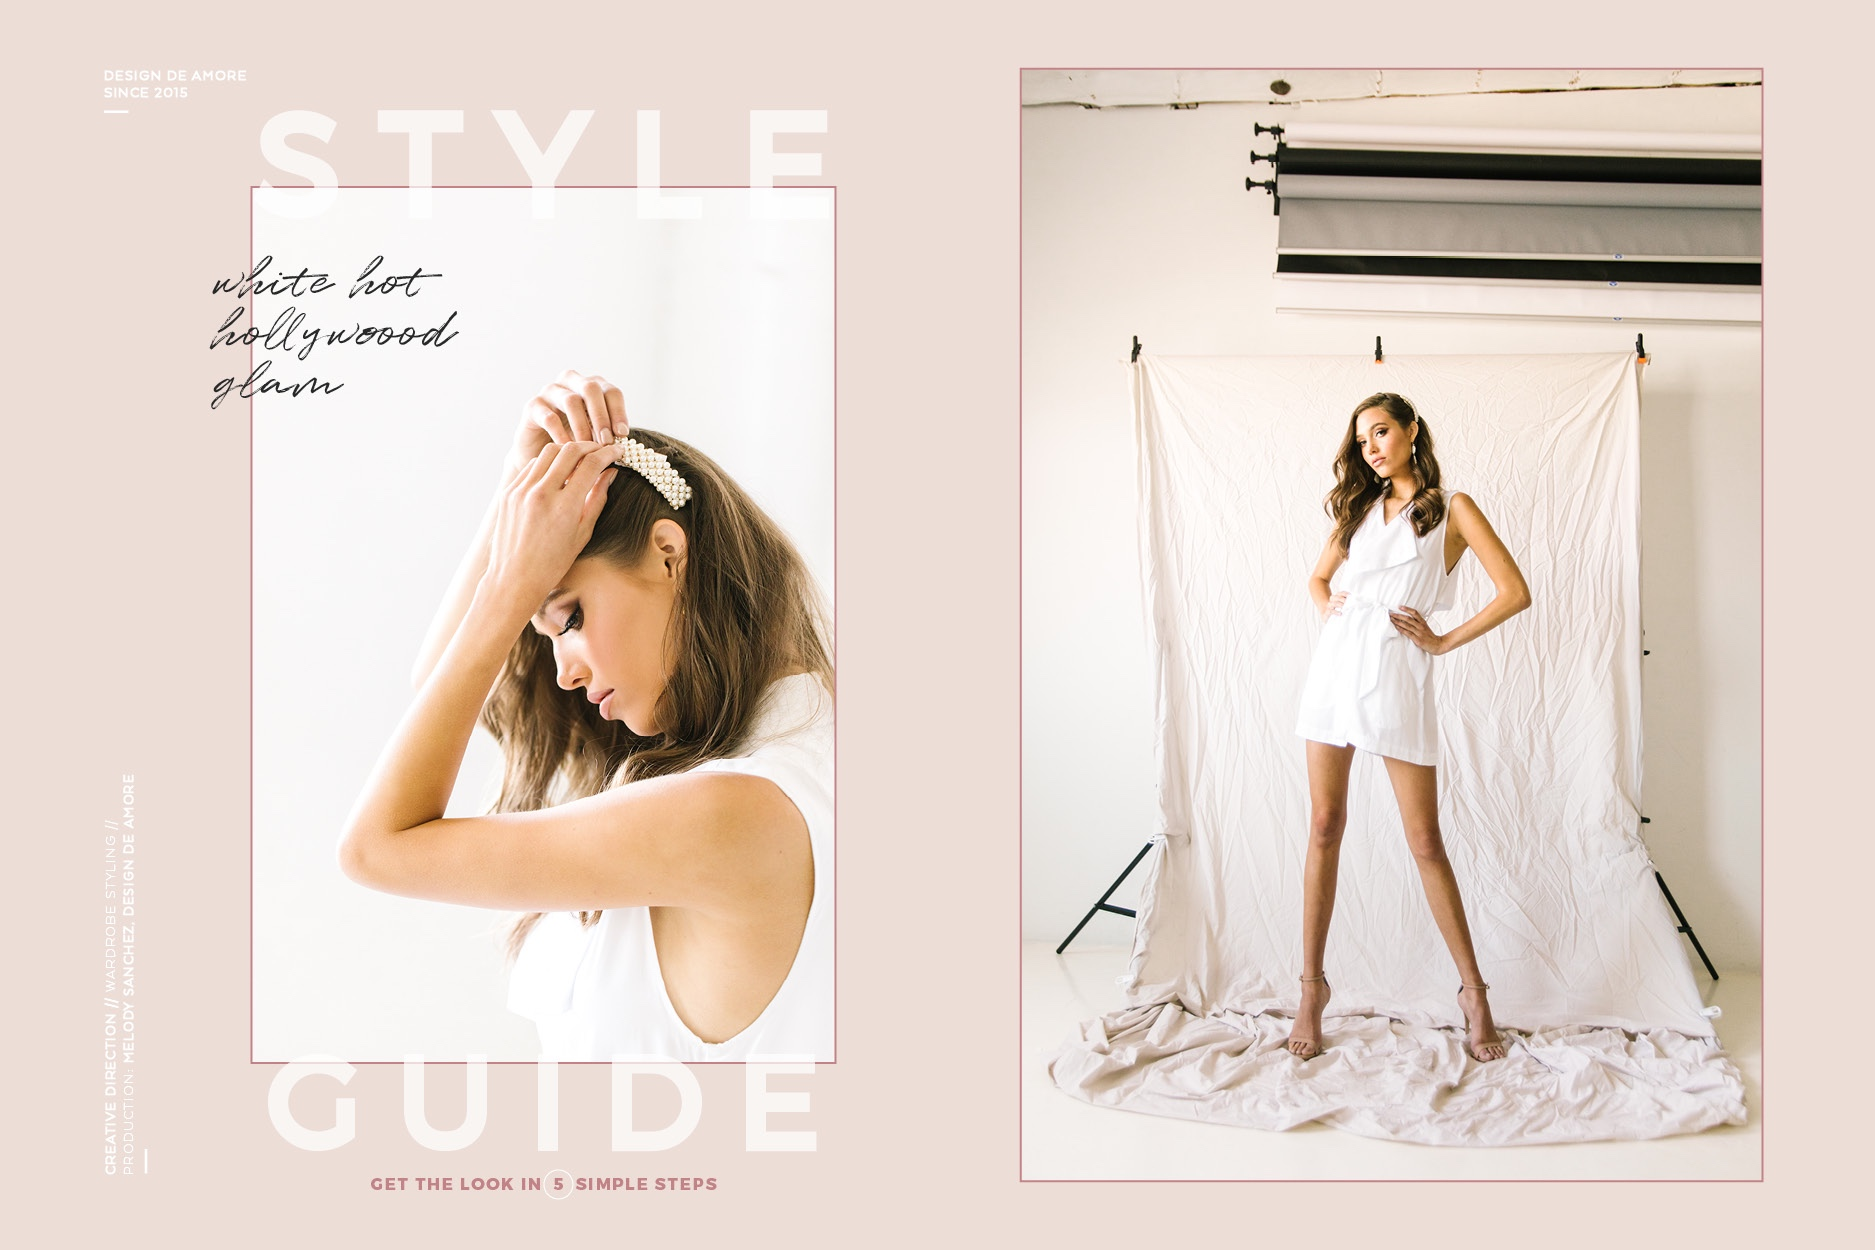 How to create a styled look in 5 easy steps by Melody Sanchez, Design De Amore